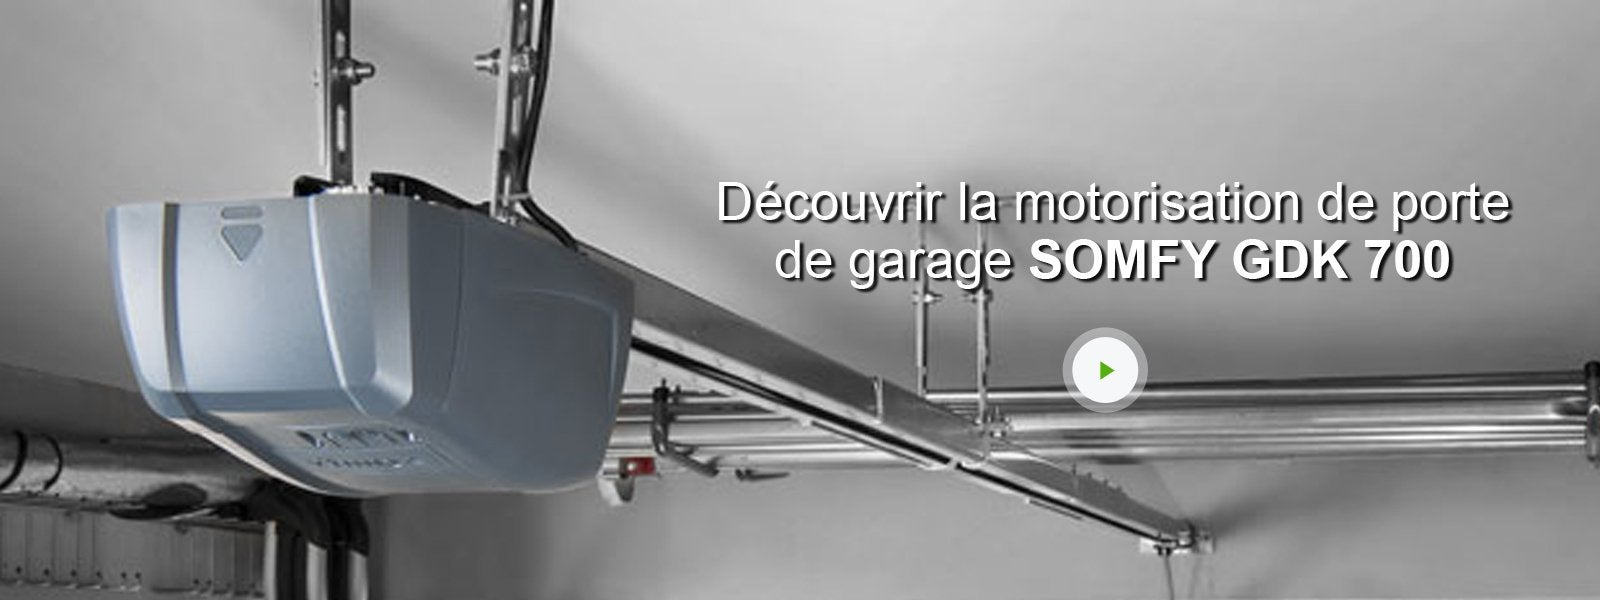 motorisation de garage connect courroie somfy gdk 700 leroy merlin. Black Bedroom Furniture Sets. Home Design Ideas